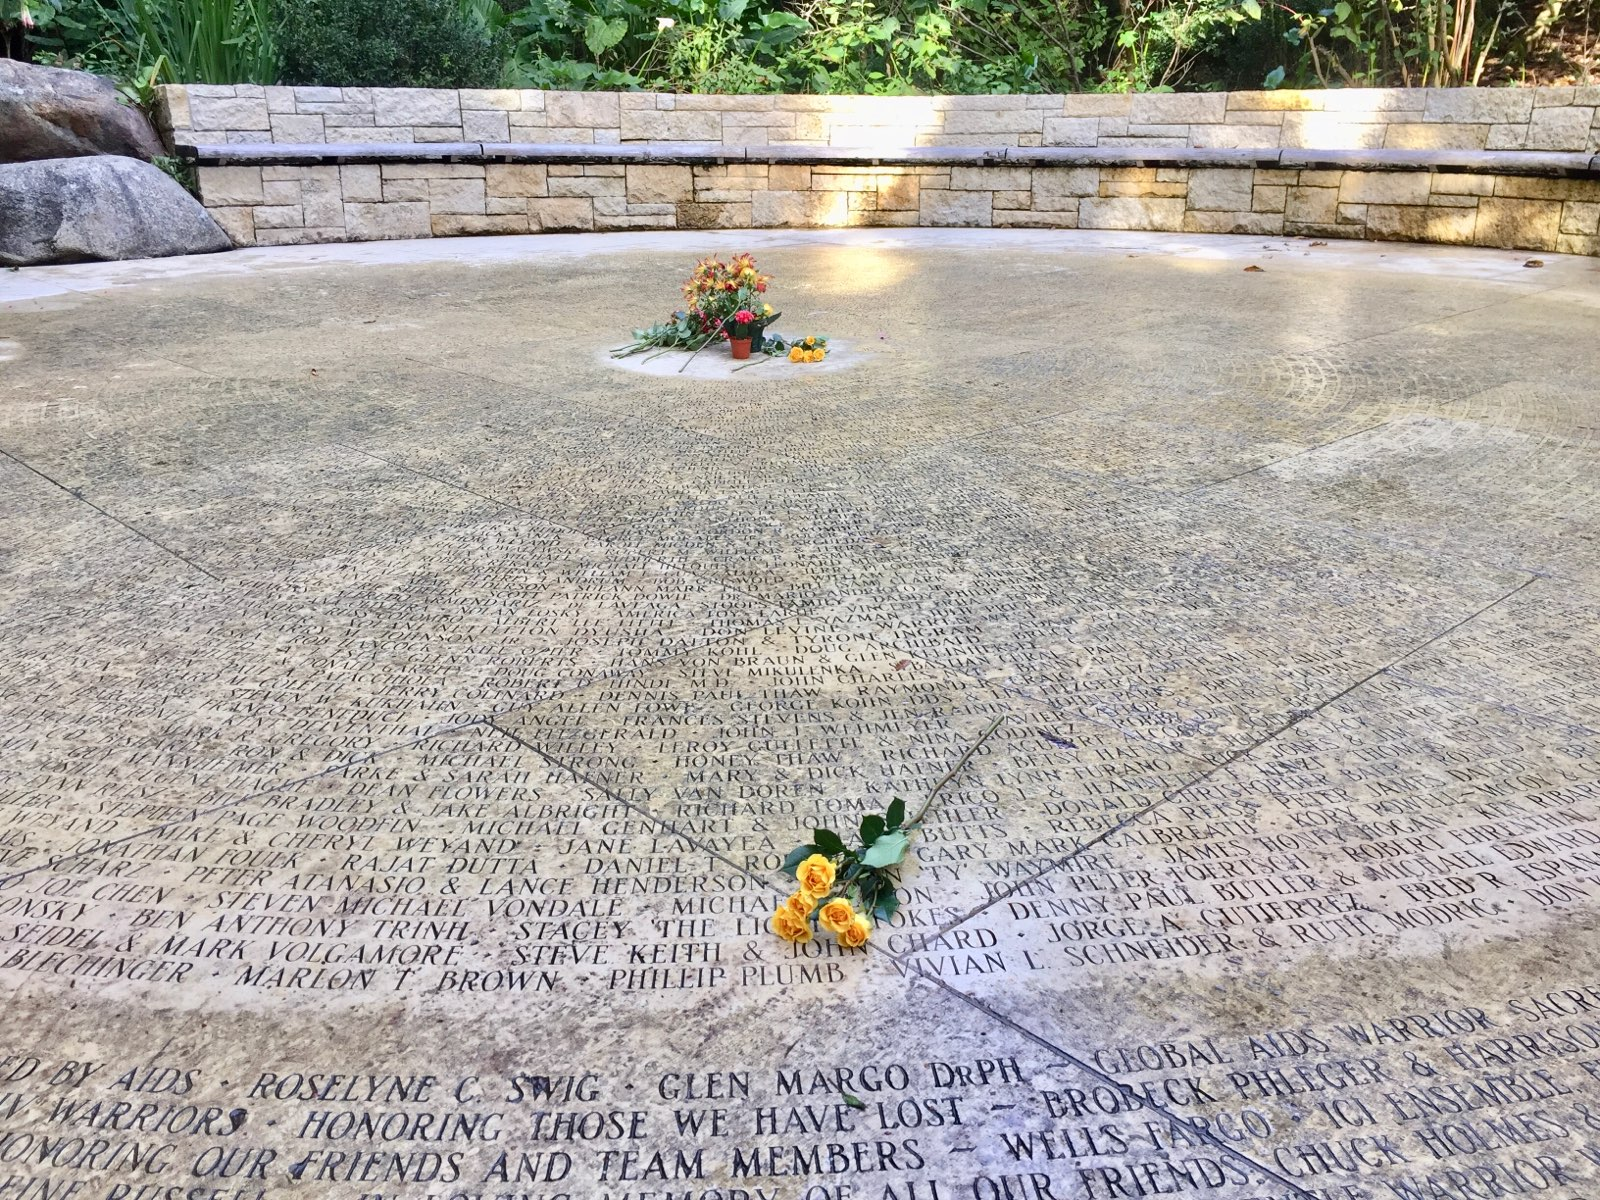 """""""Circle of Friends"""" marker, inscribed with names of those who died from AIDS, along with the names of friends, family, and supporters"""